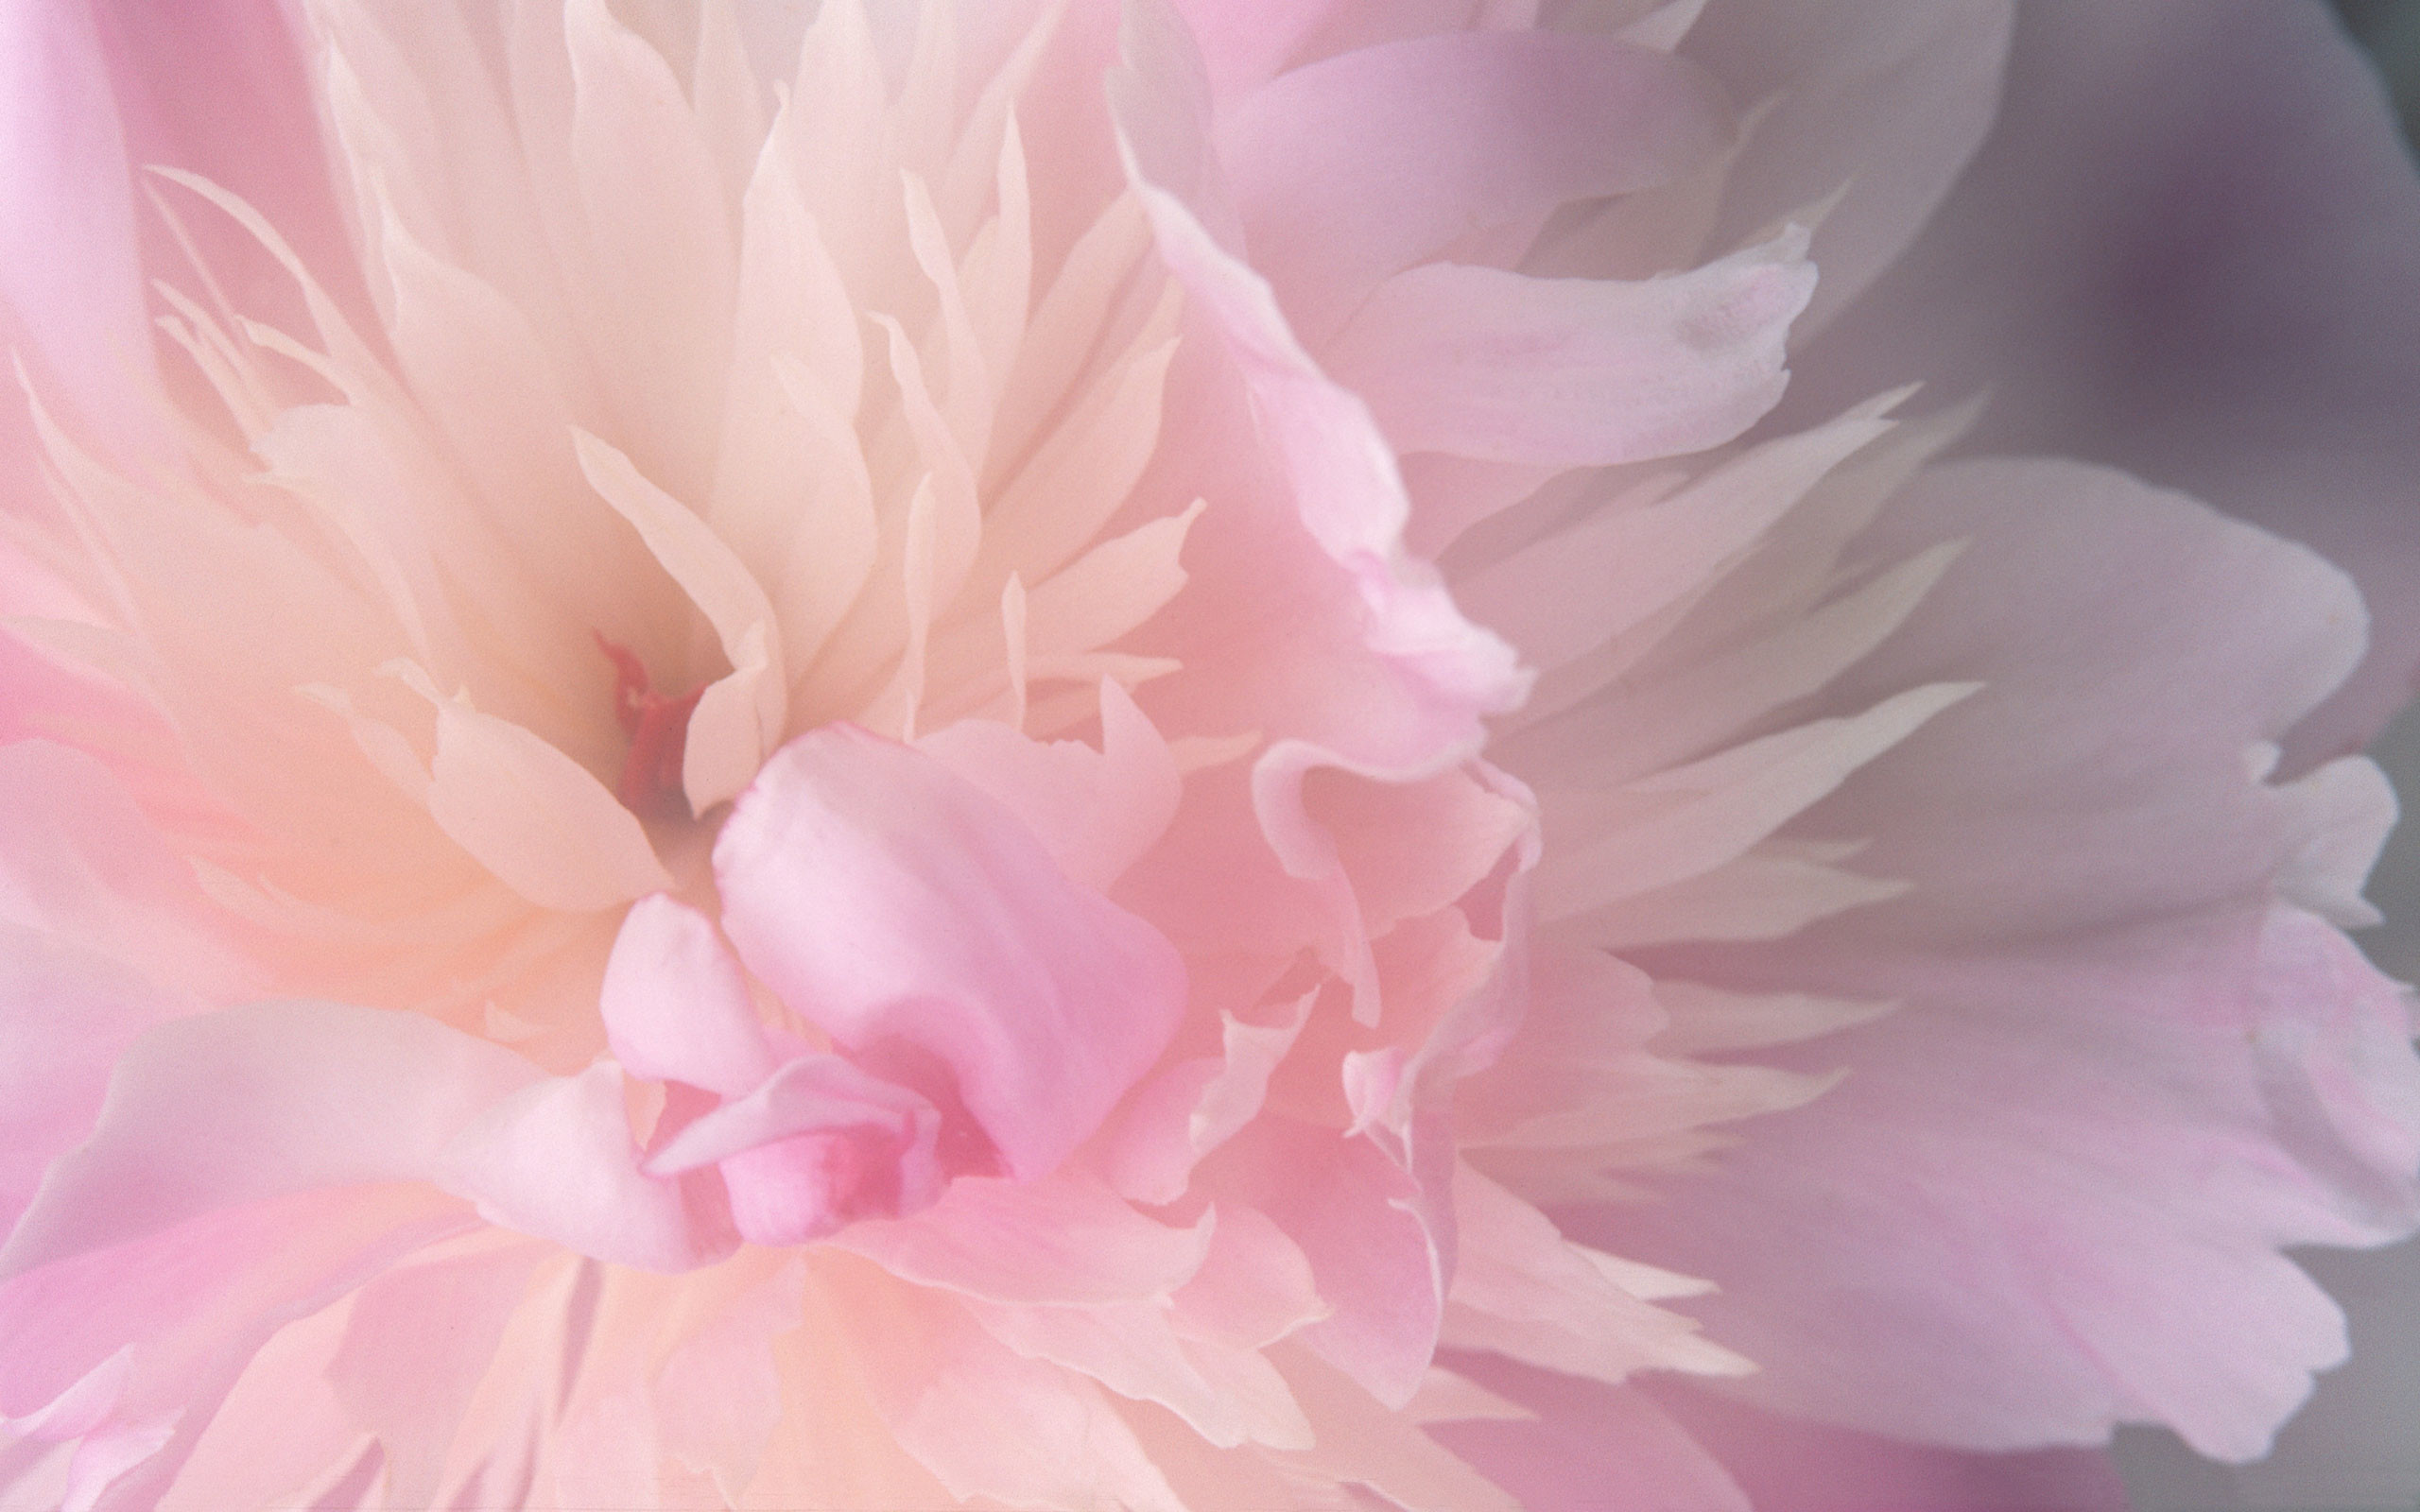 Res: 2560x1600, Peony Wallpapers Peony Backgrounds Peony HD Wallpapers